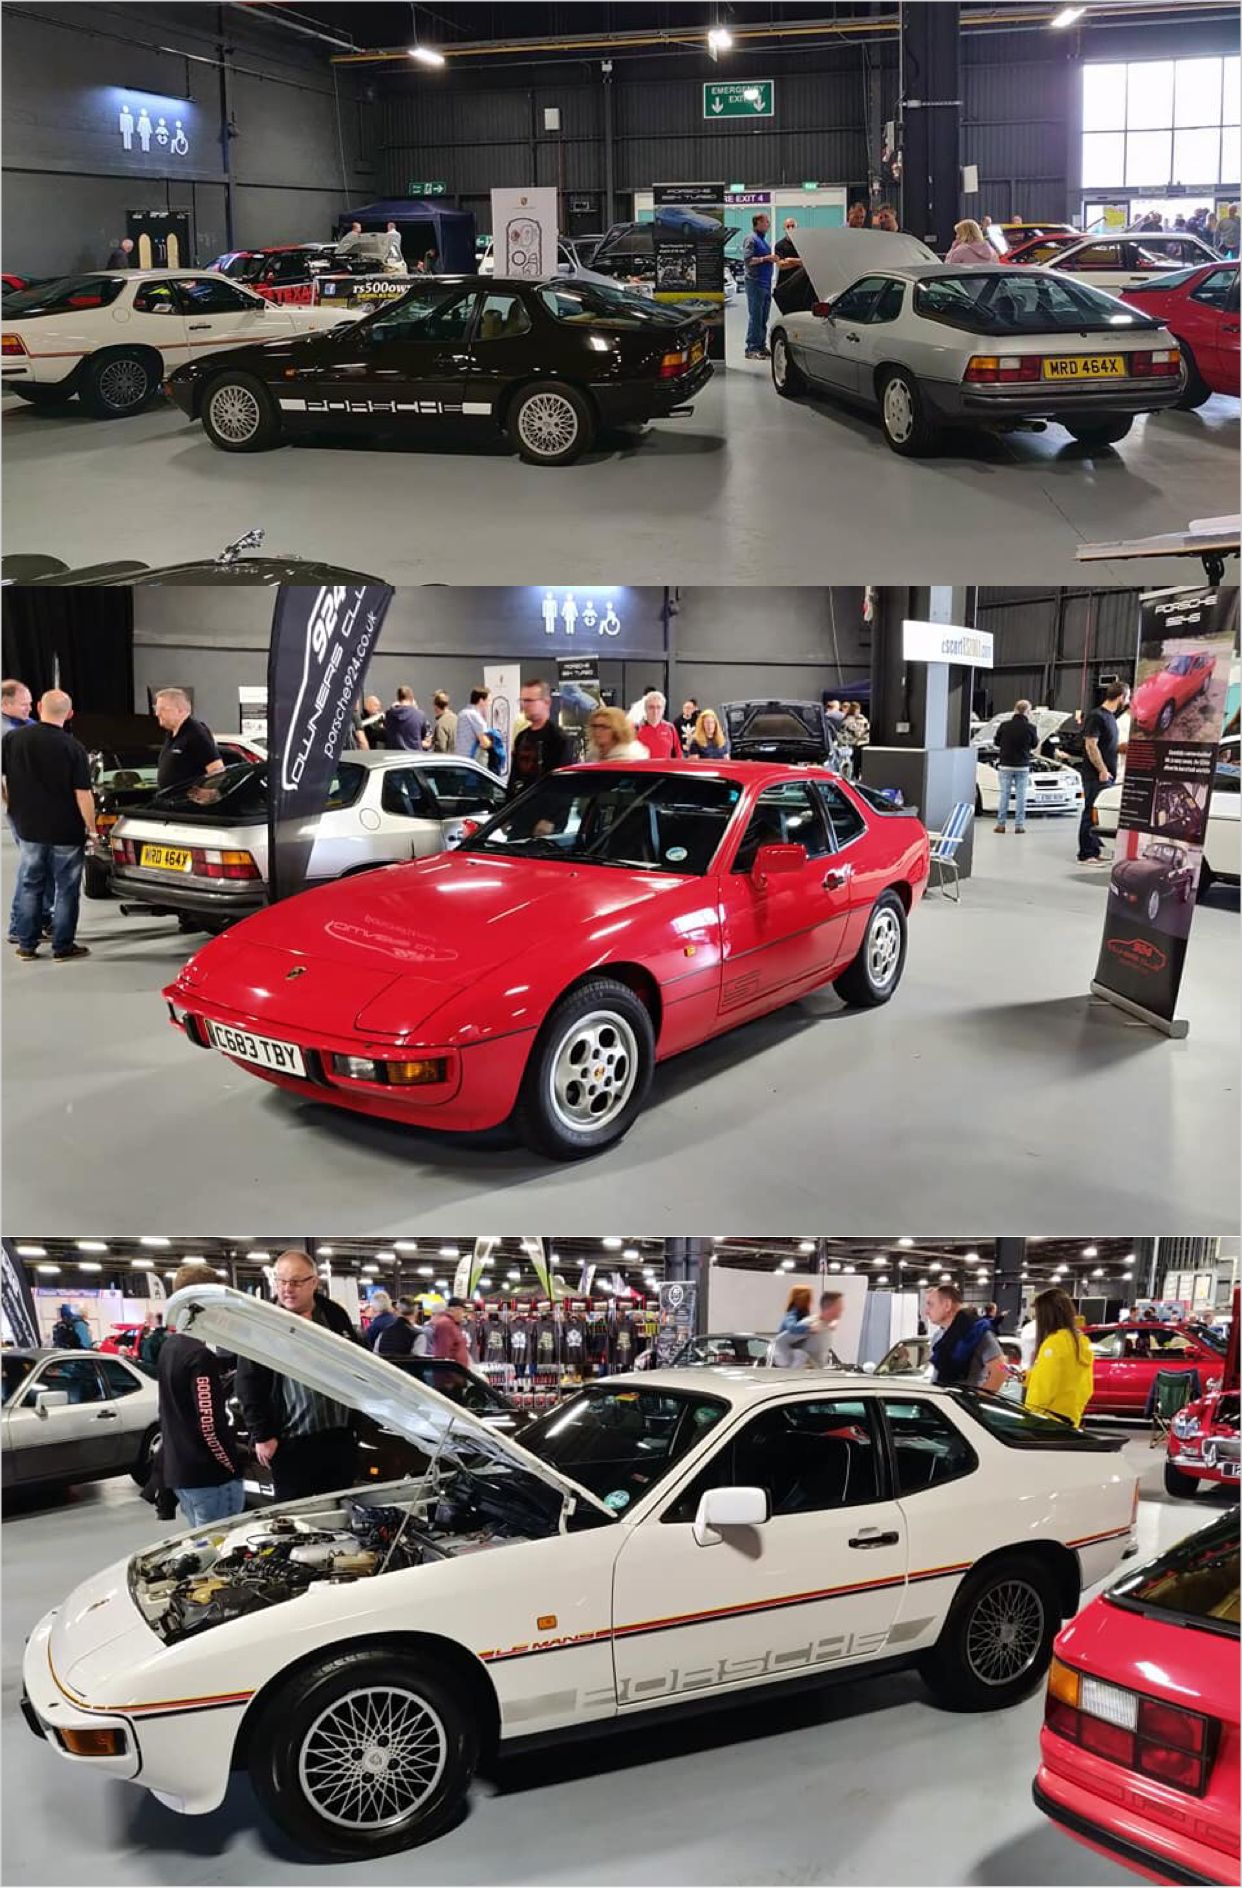 Porsche Owners Club Stand At Manchester Classic Car Show - Car show england